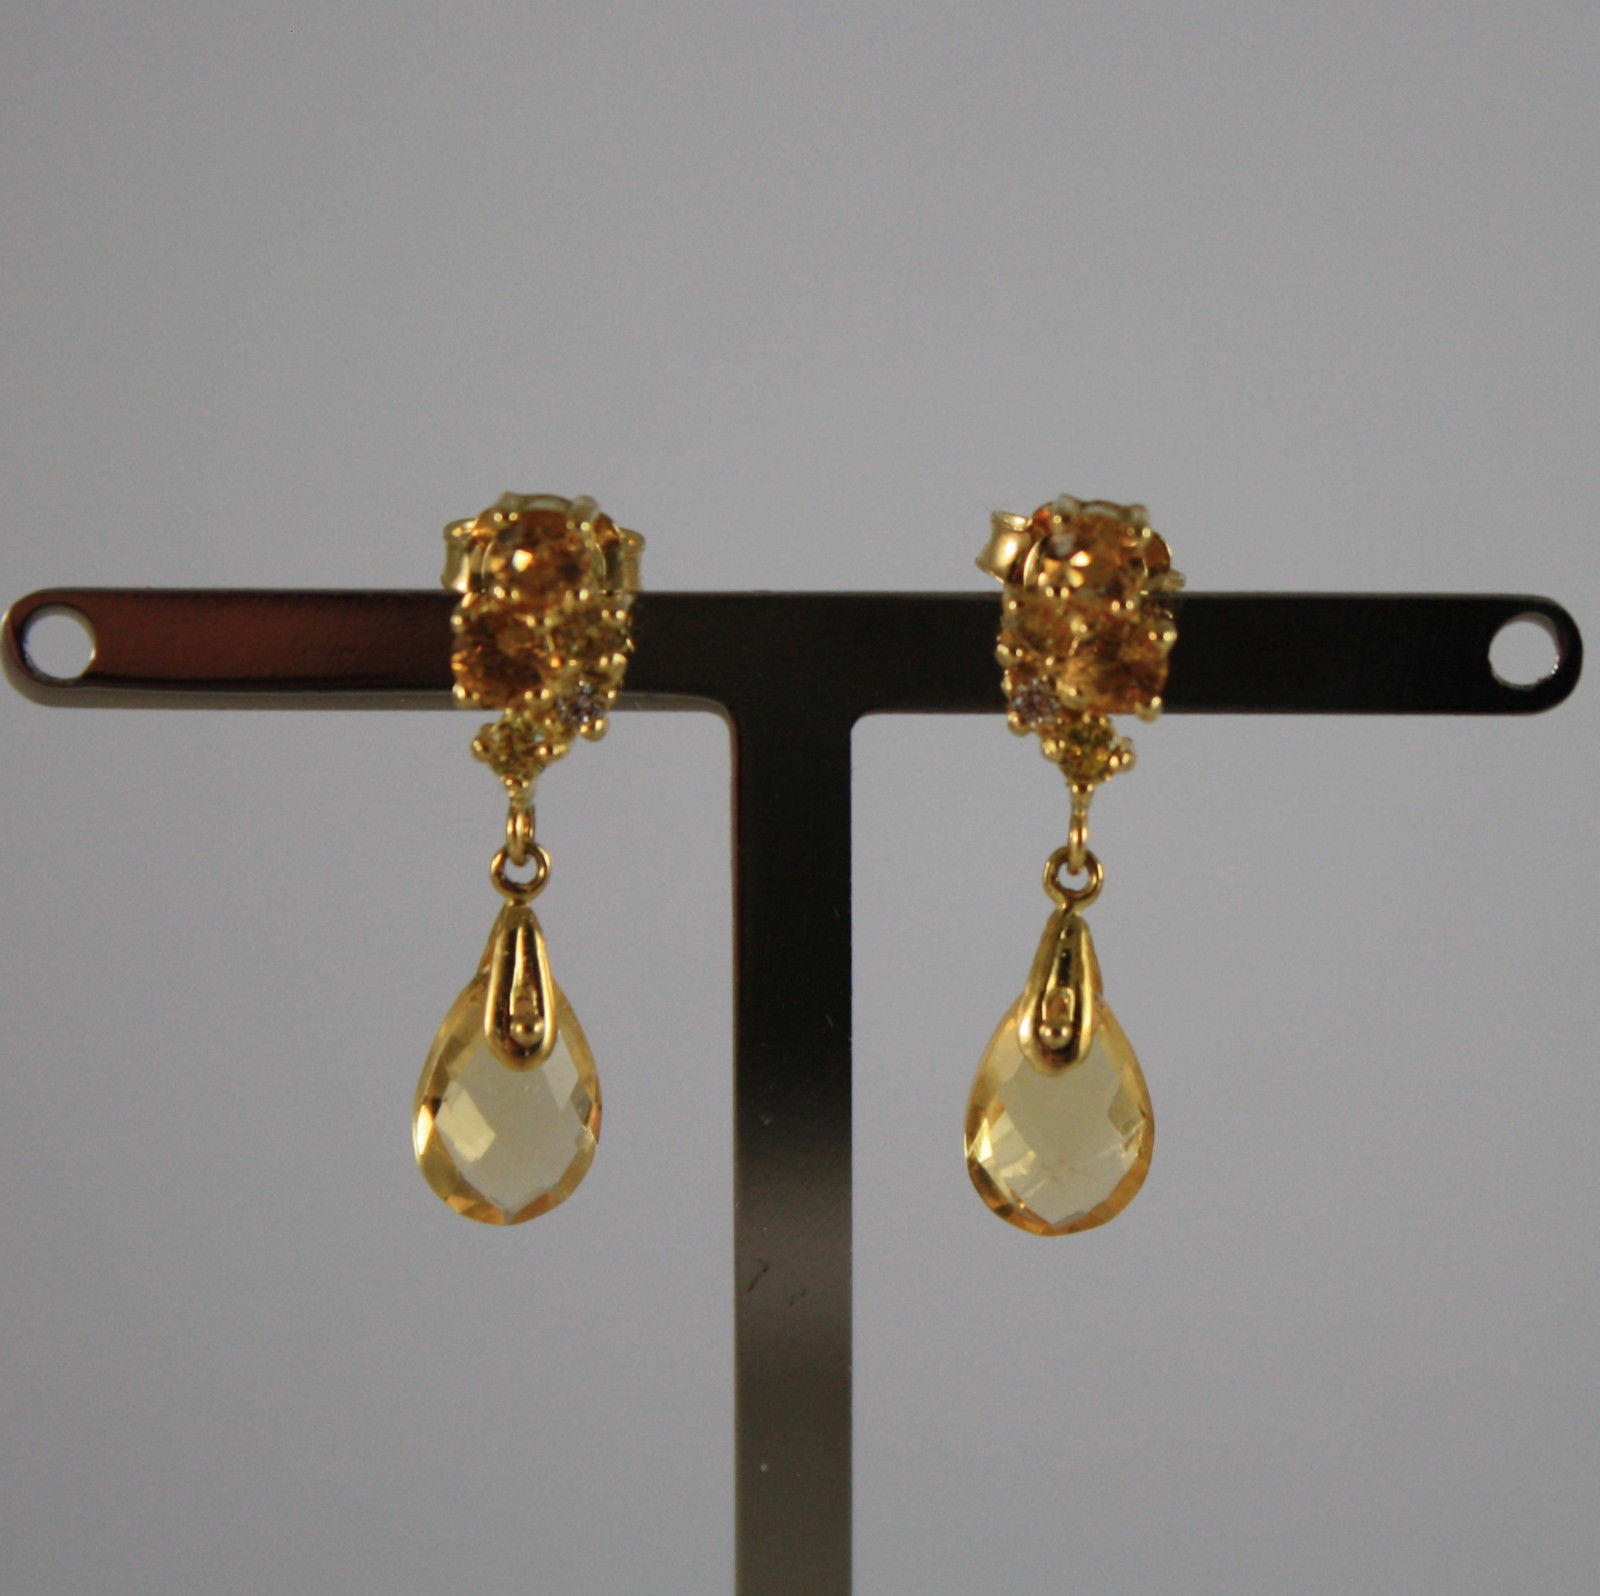 SOLID 18K YELLOW GOLD EARRINGS, WITH CITRINE QUARTZ AND ZIRCONIA, MADE IN ITALY